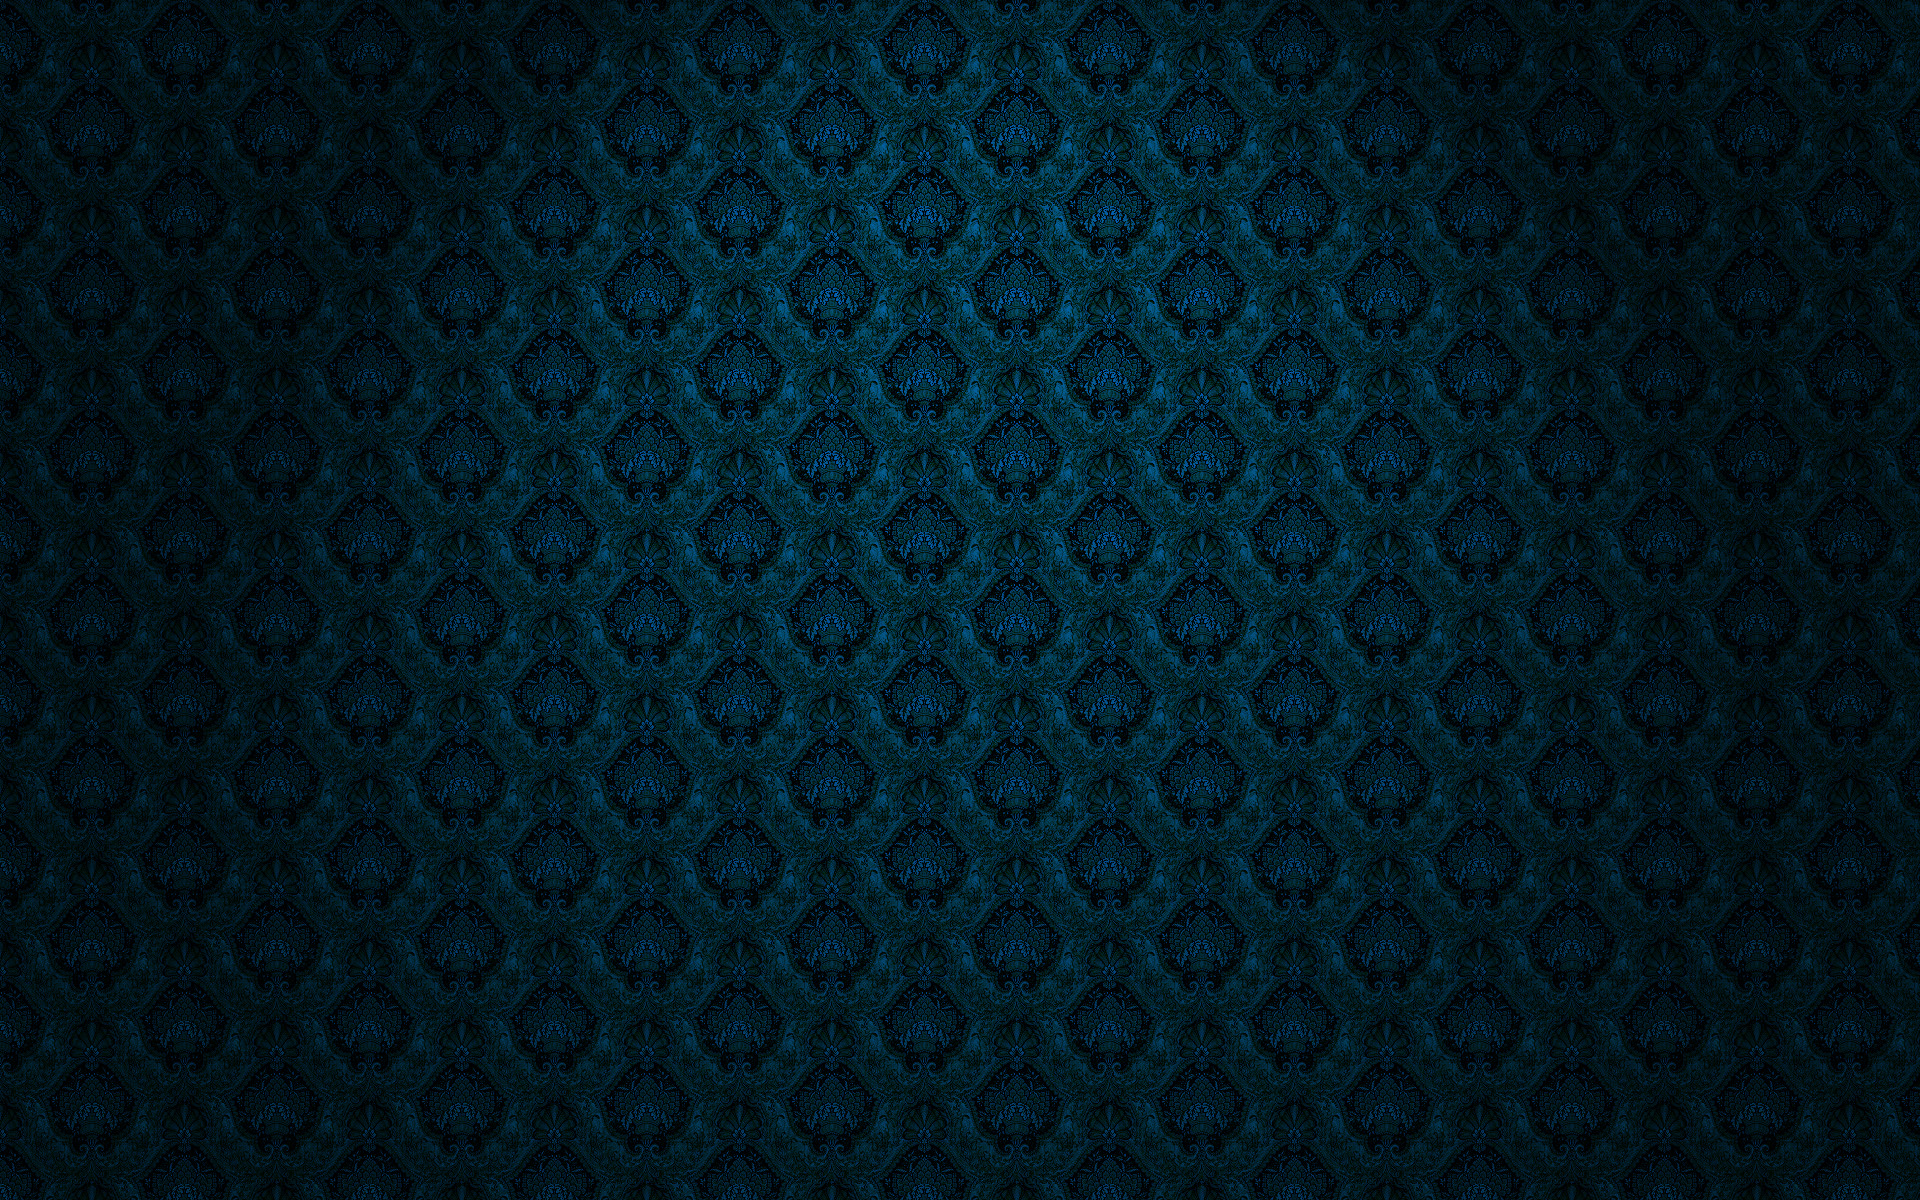 Burberry Wallpaper Iphone X Other Full Hd Wallpaper And Background Image 1920x1200